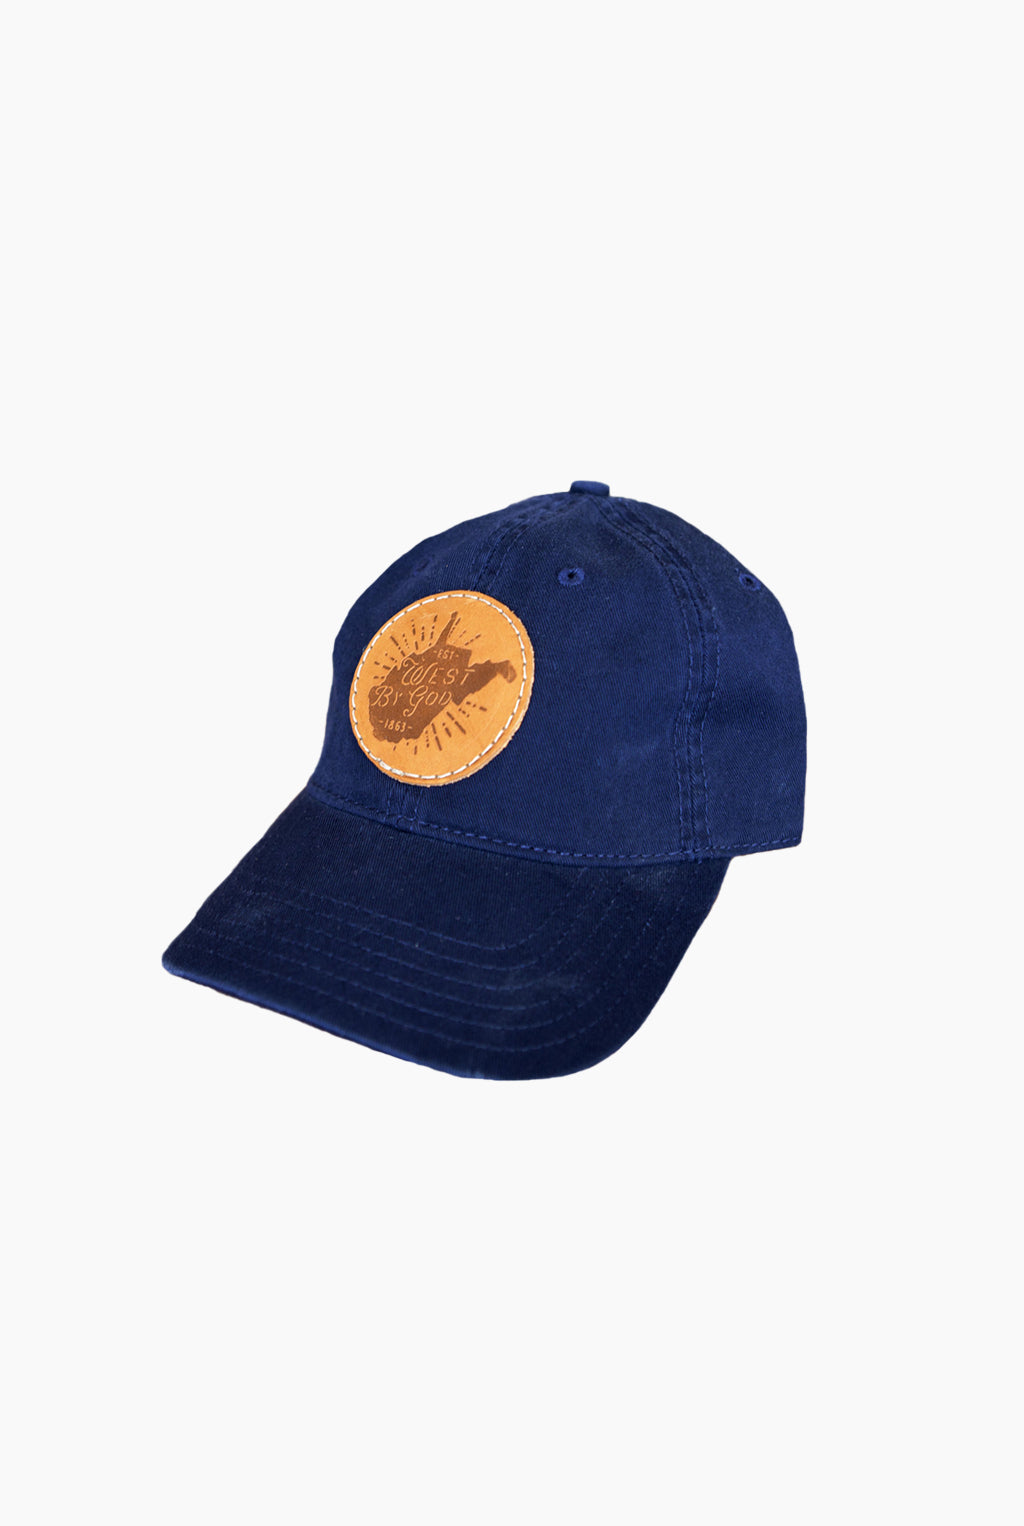 west by god cap, navy